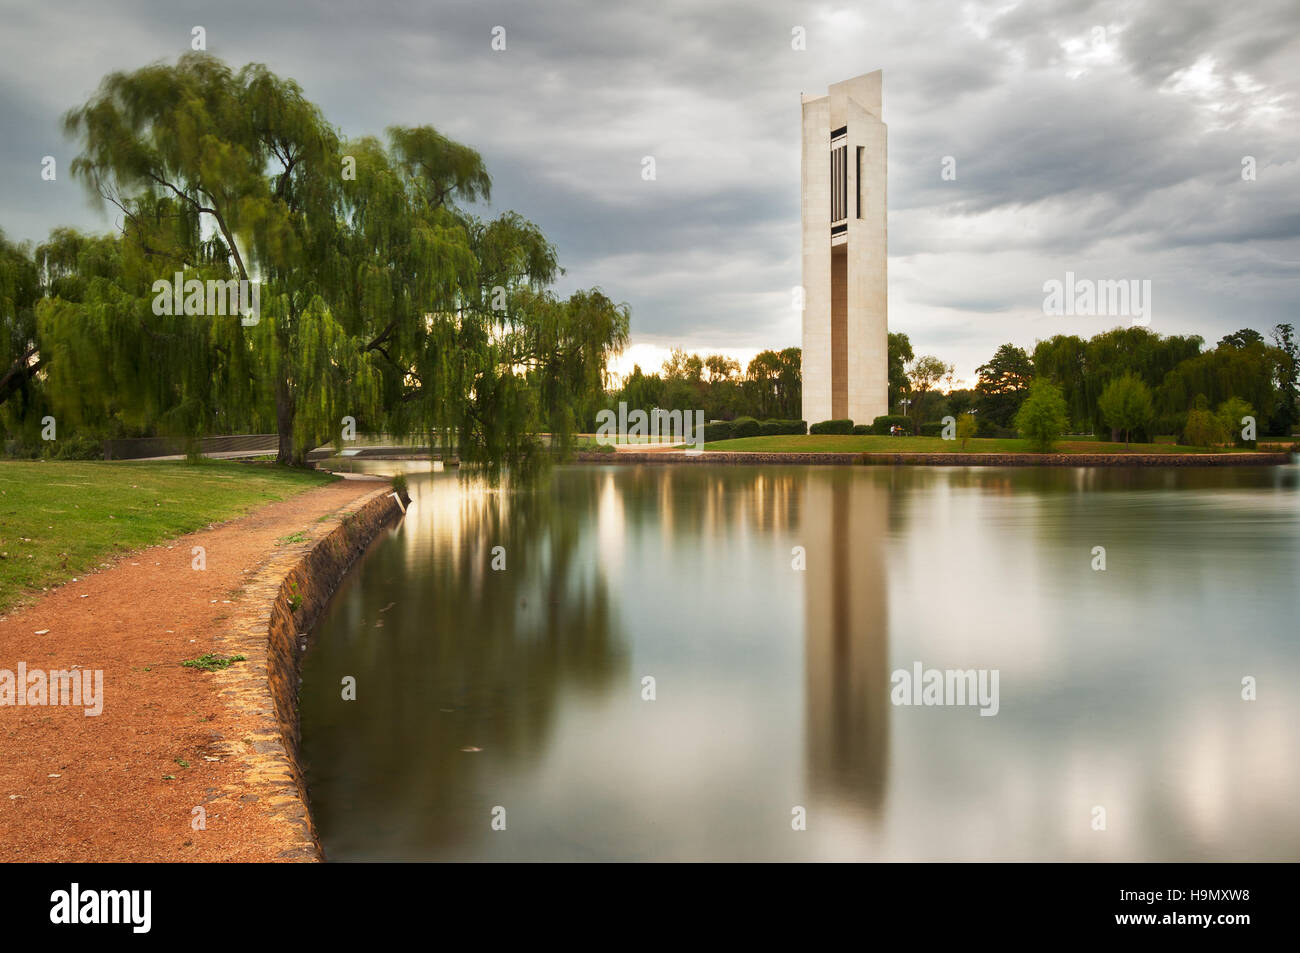 The National Carillion in Australia's capital Canberra. - Stock Image